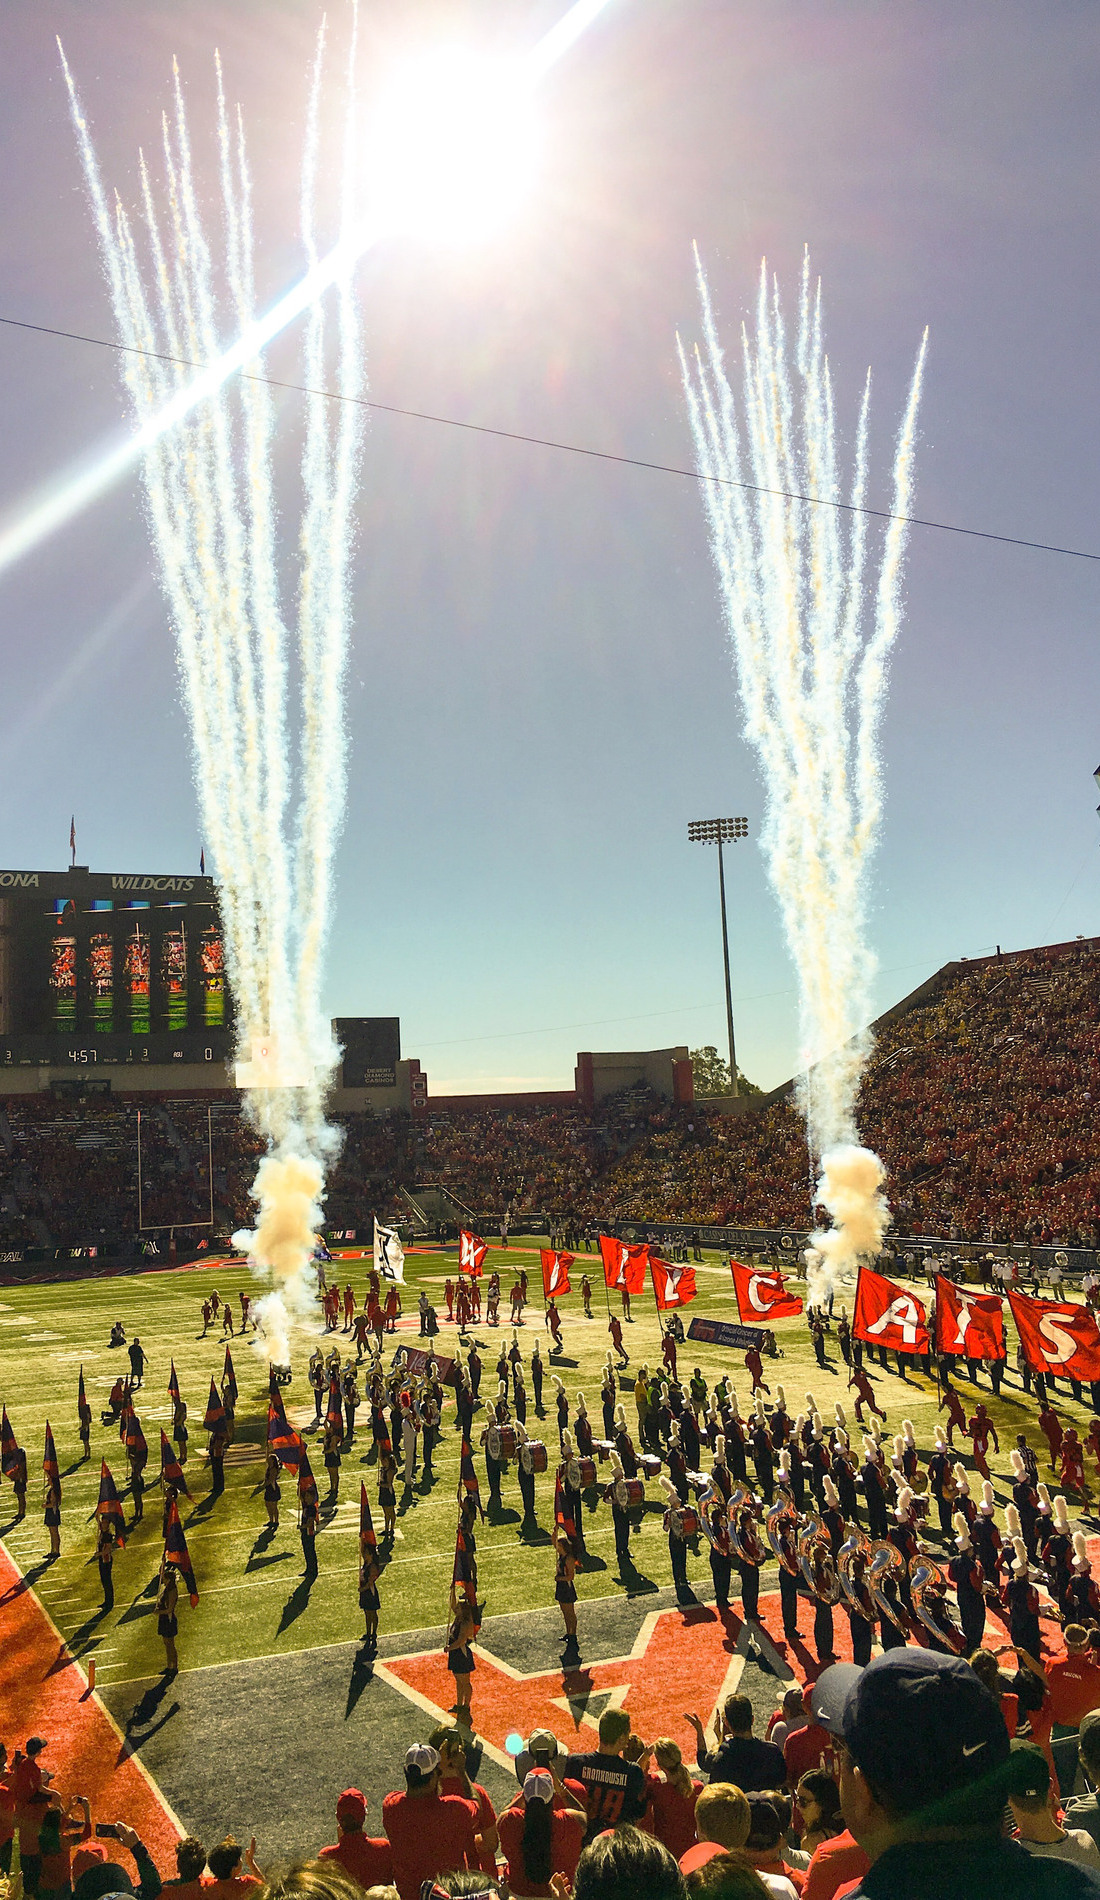 A Arizona Wildcats Football live event